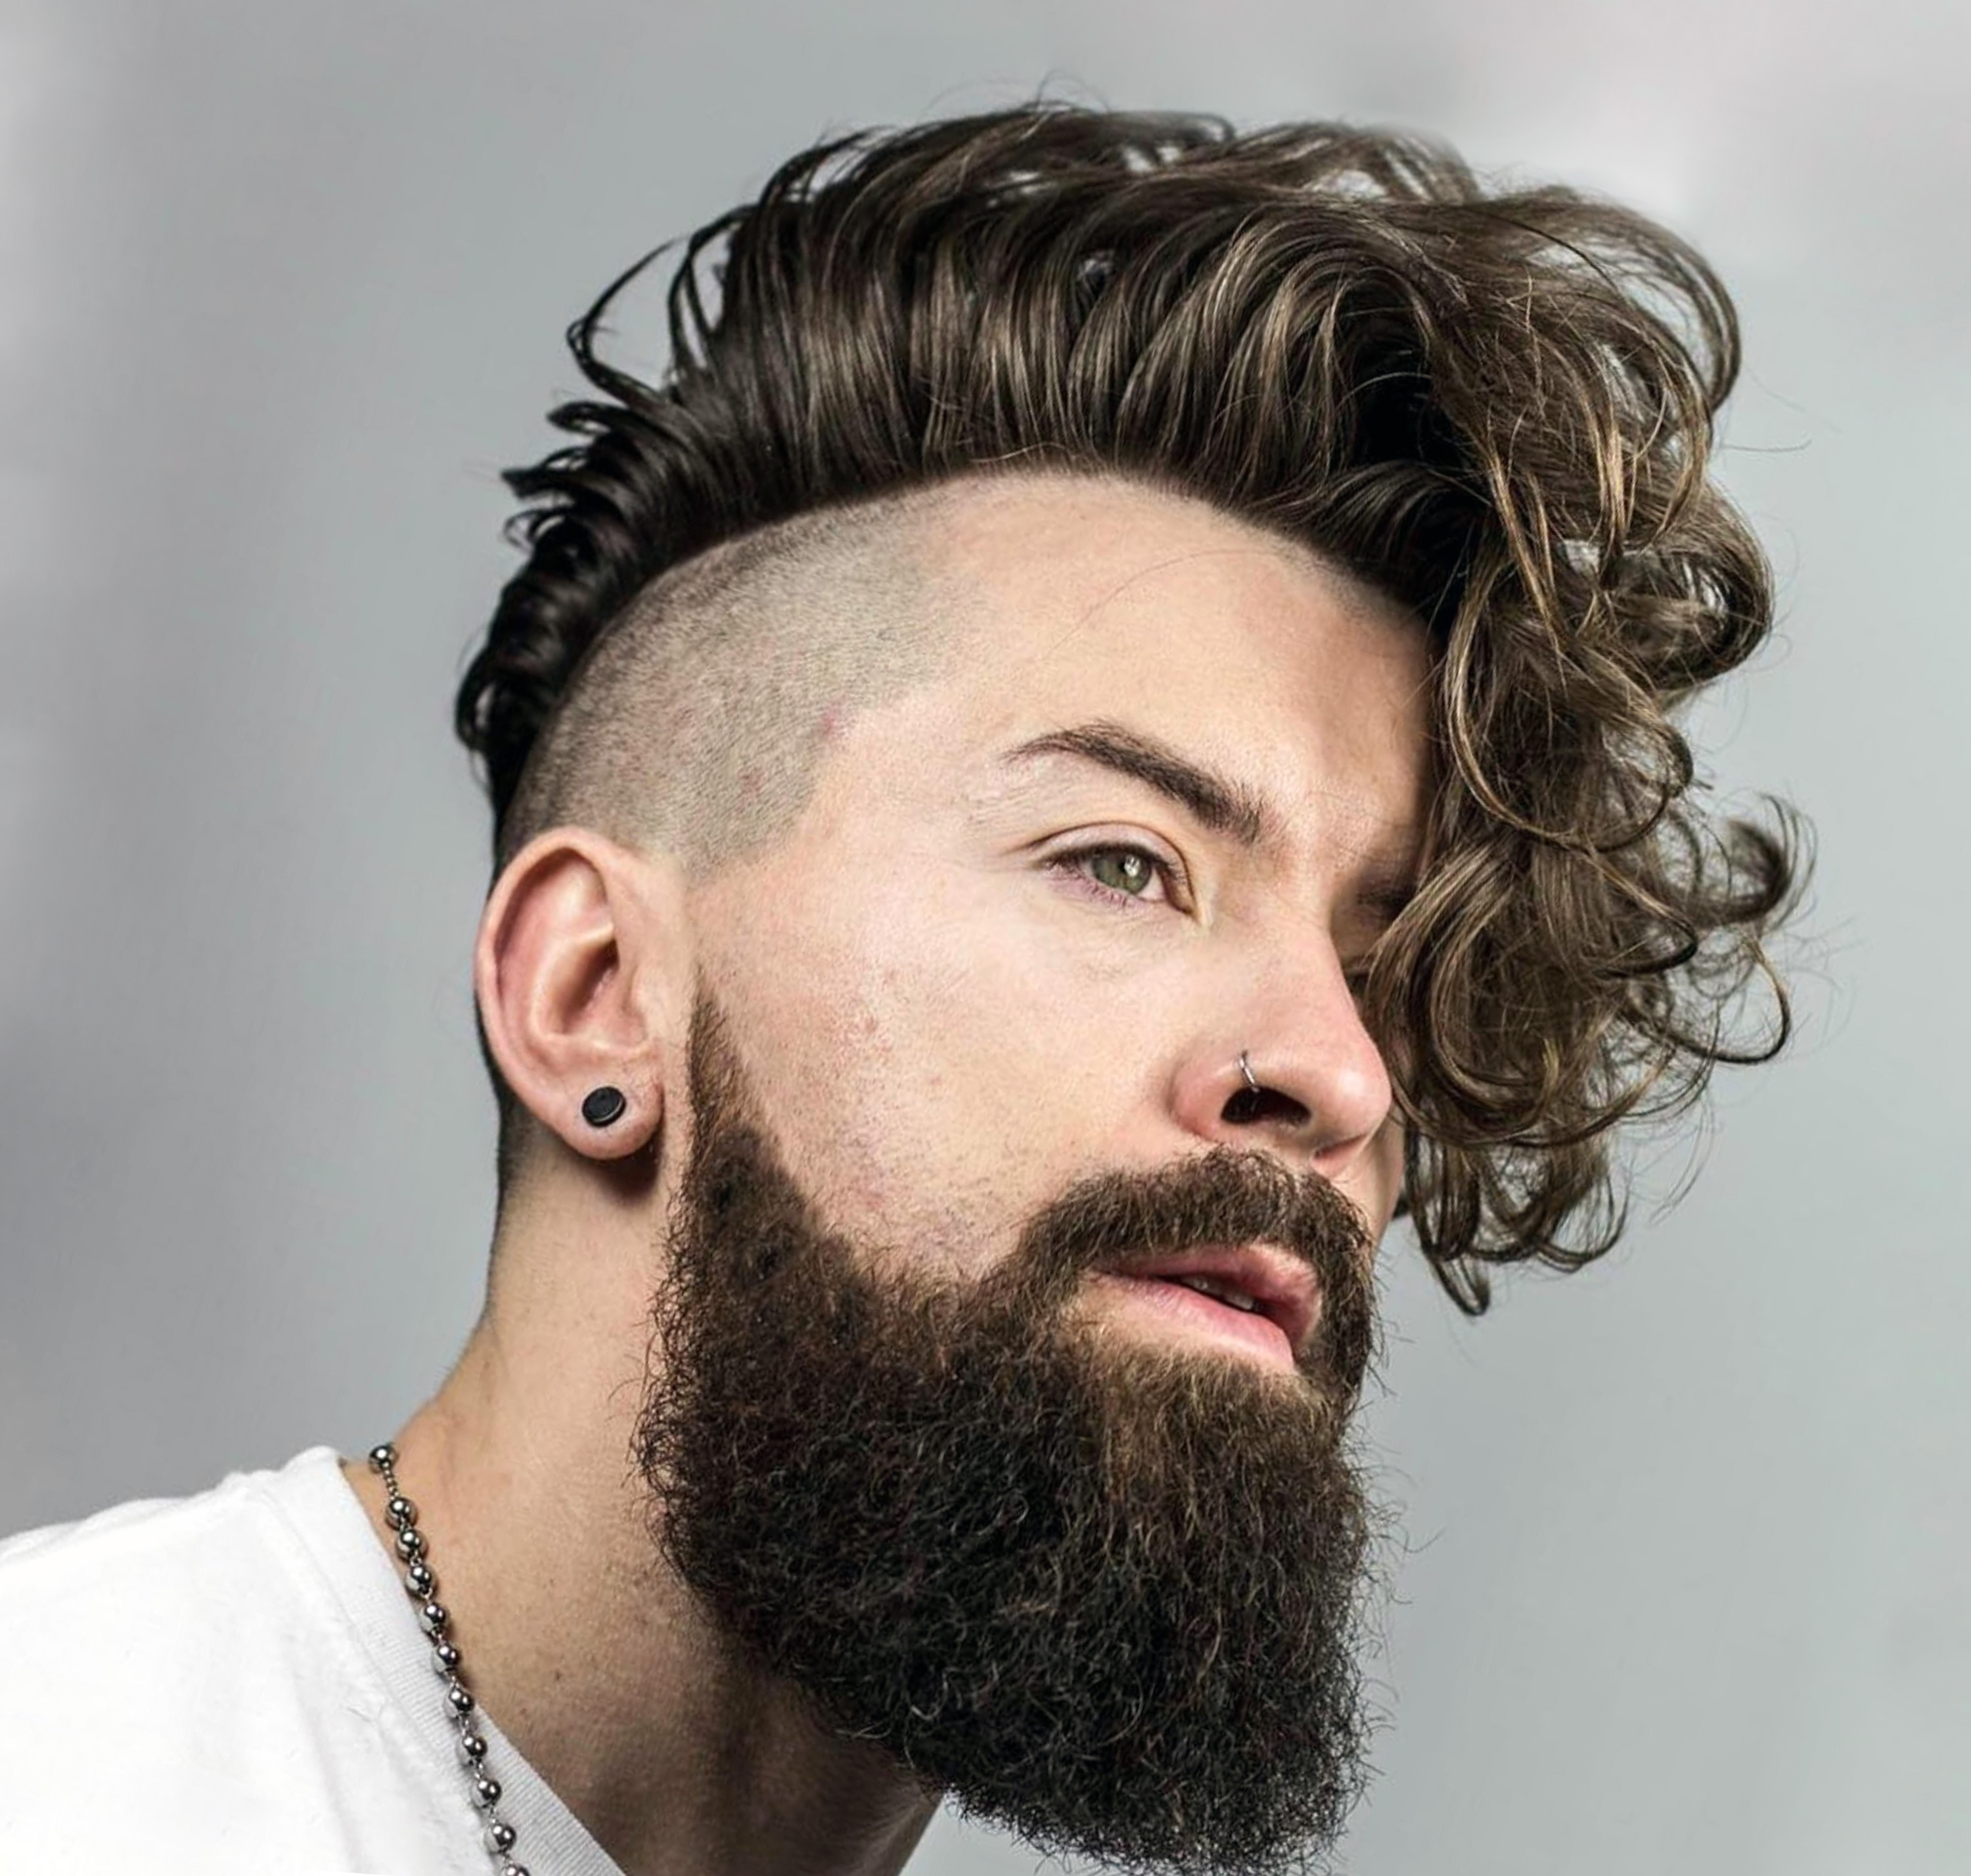 A full beard for men with wavy hair.